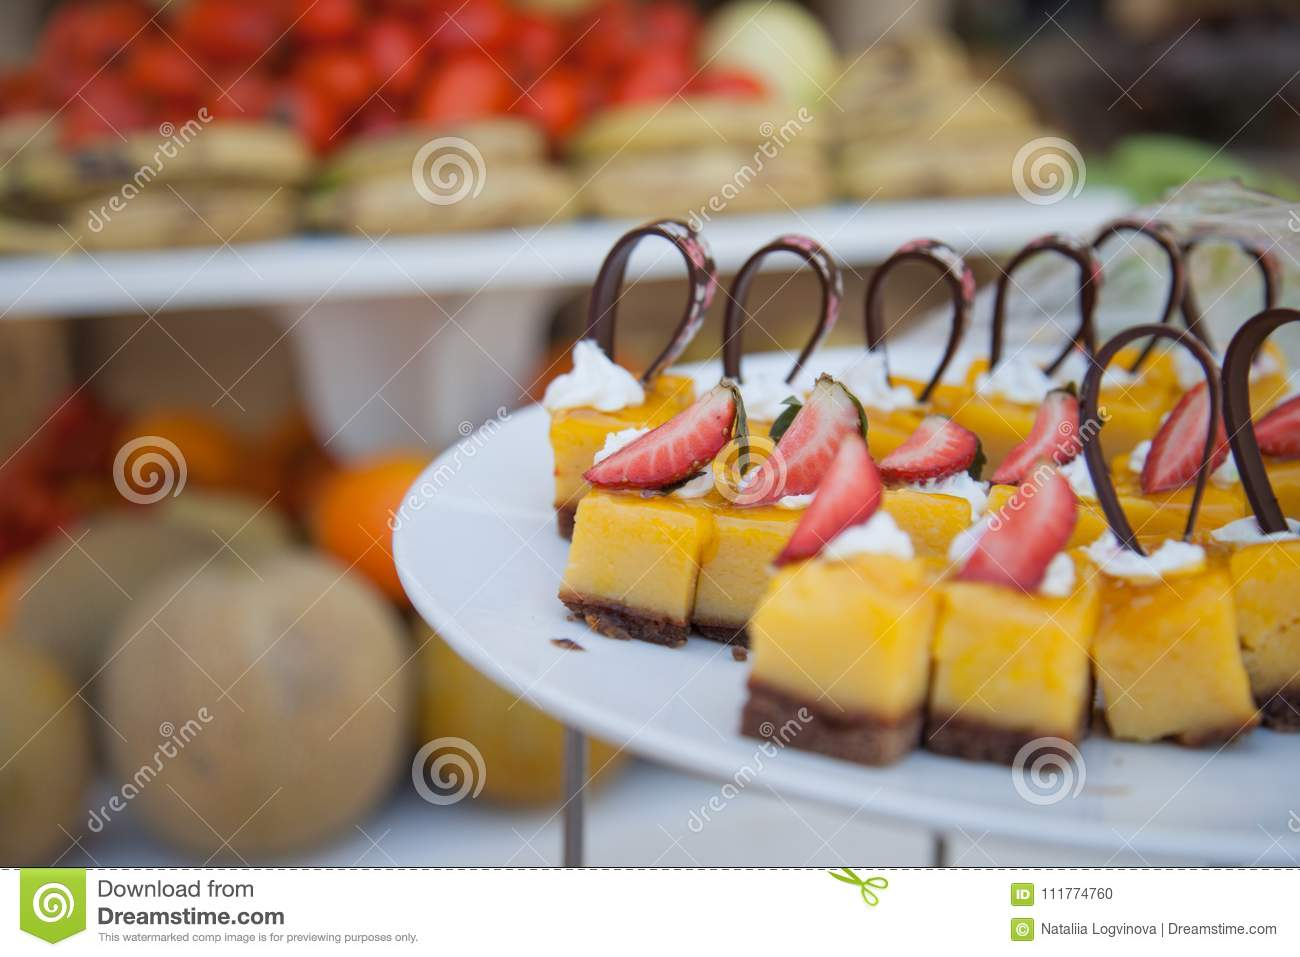 Fabulous Delicious Sweets Dessert Plate Bakery And Restaurant Download Free Architecture Designs Scobabritishbridgeorg